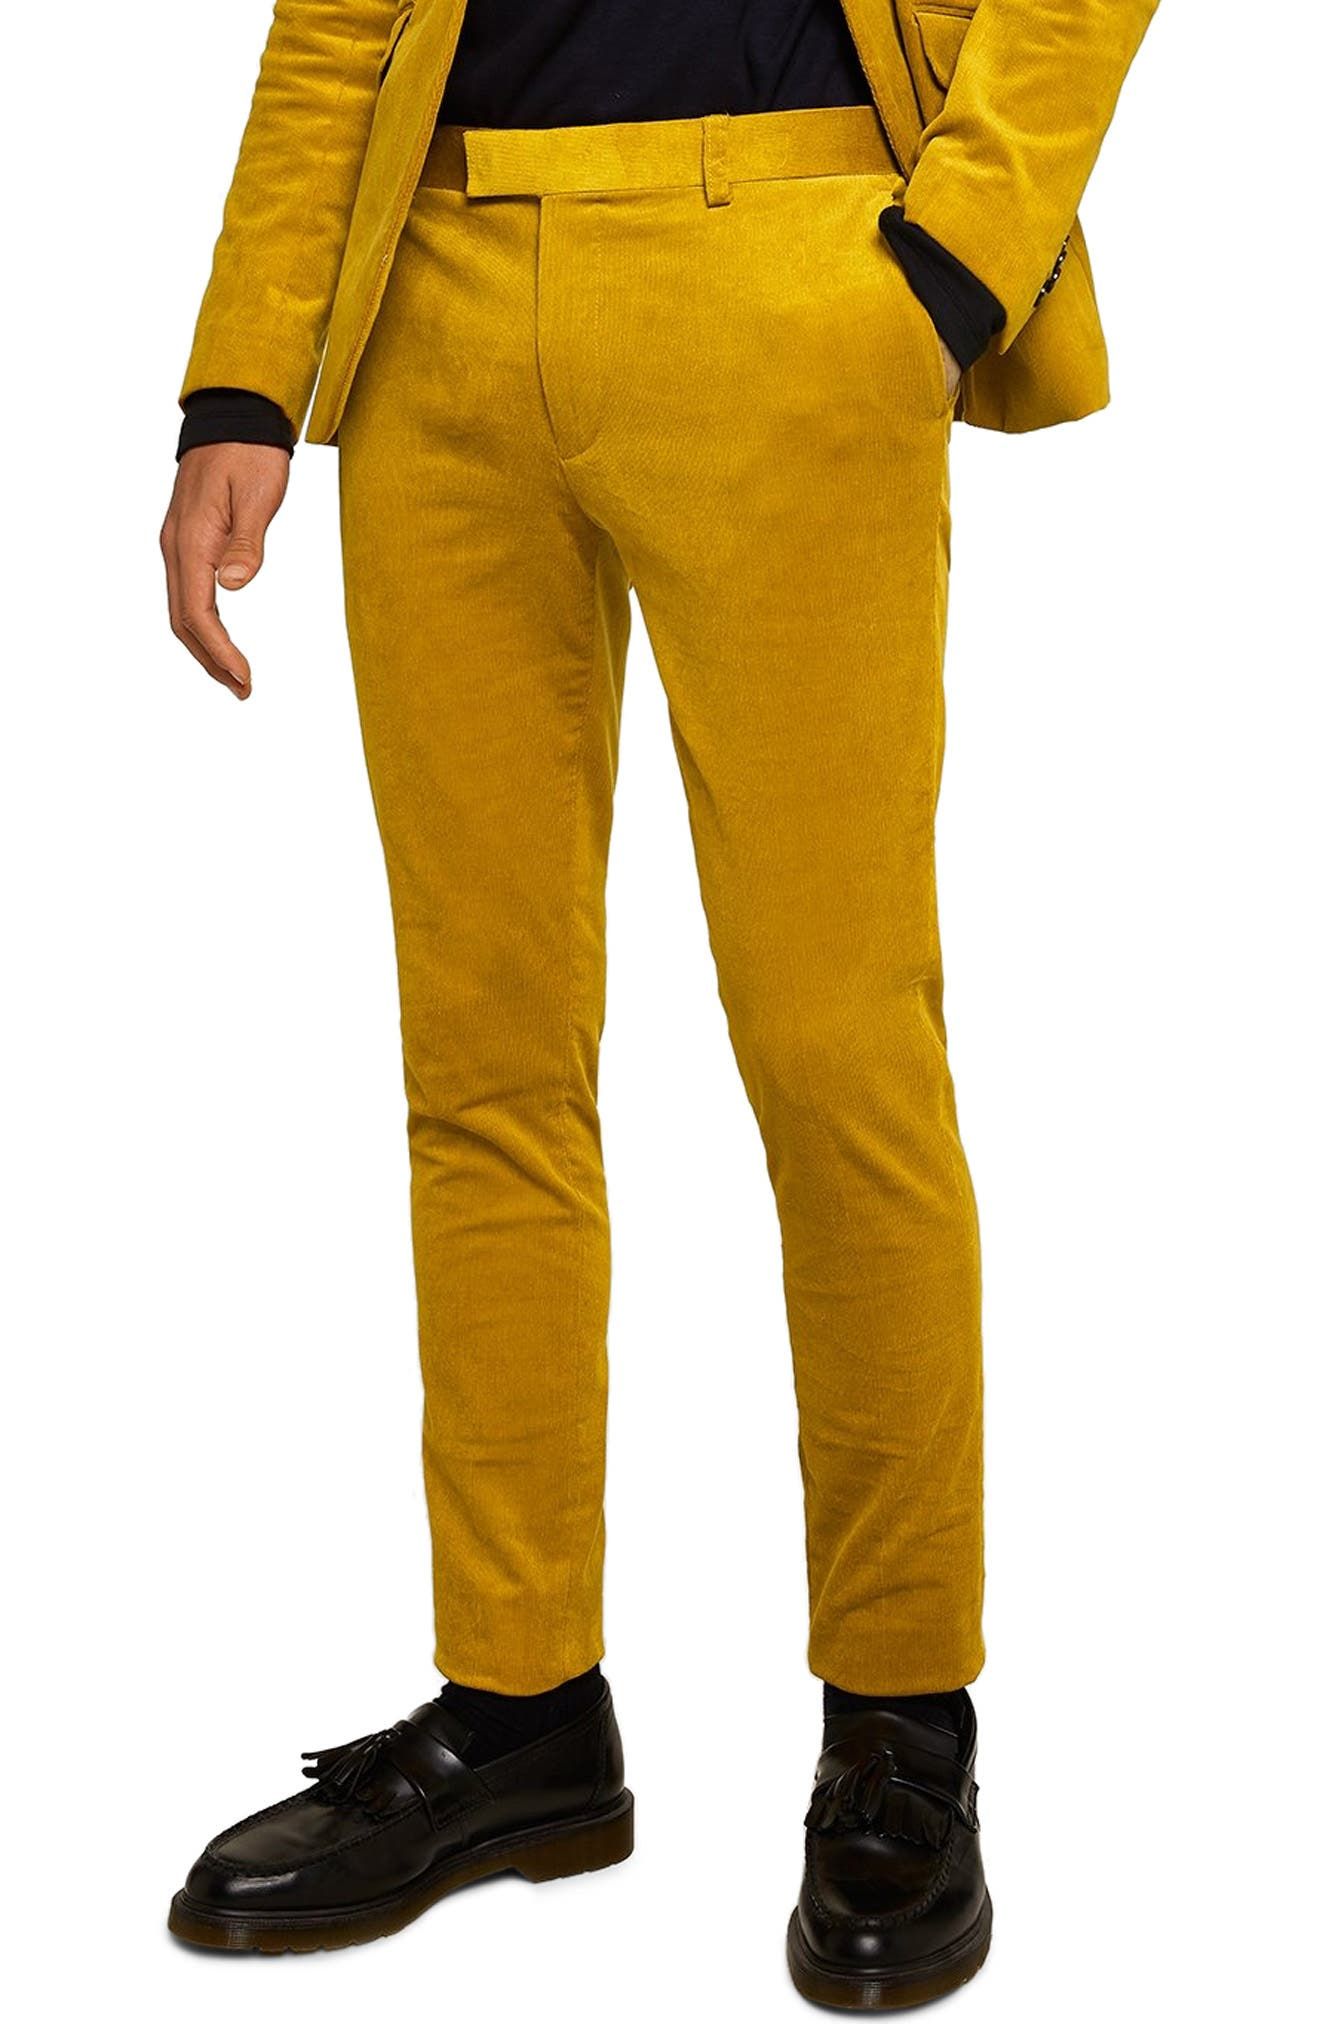 Super Skinny Fit Corduroy Trousers,                             Main thumbnail 1, color,                             YELLOW